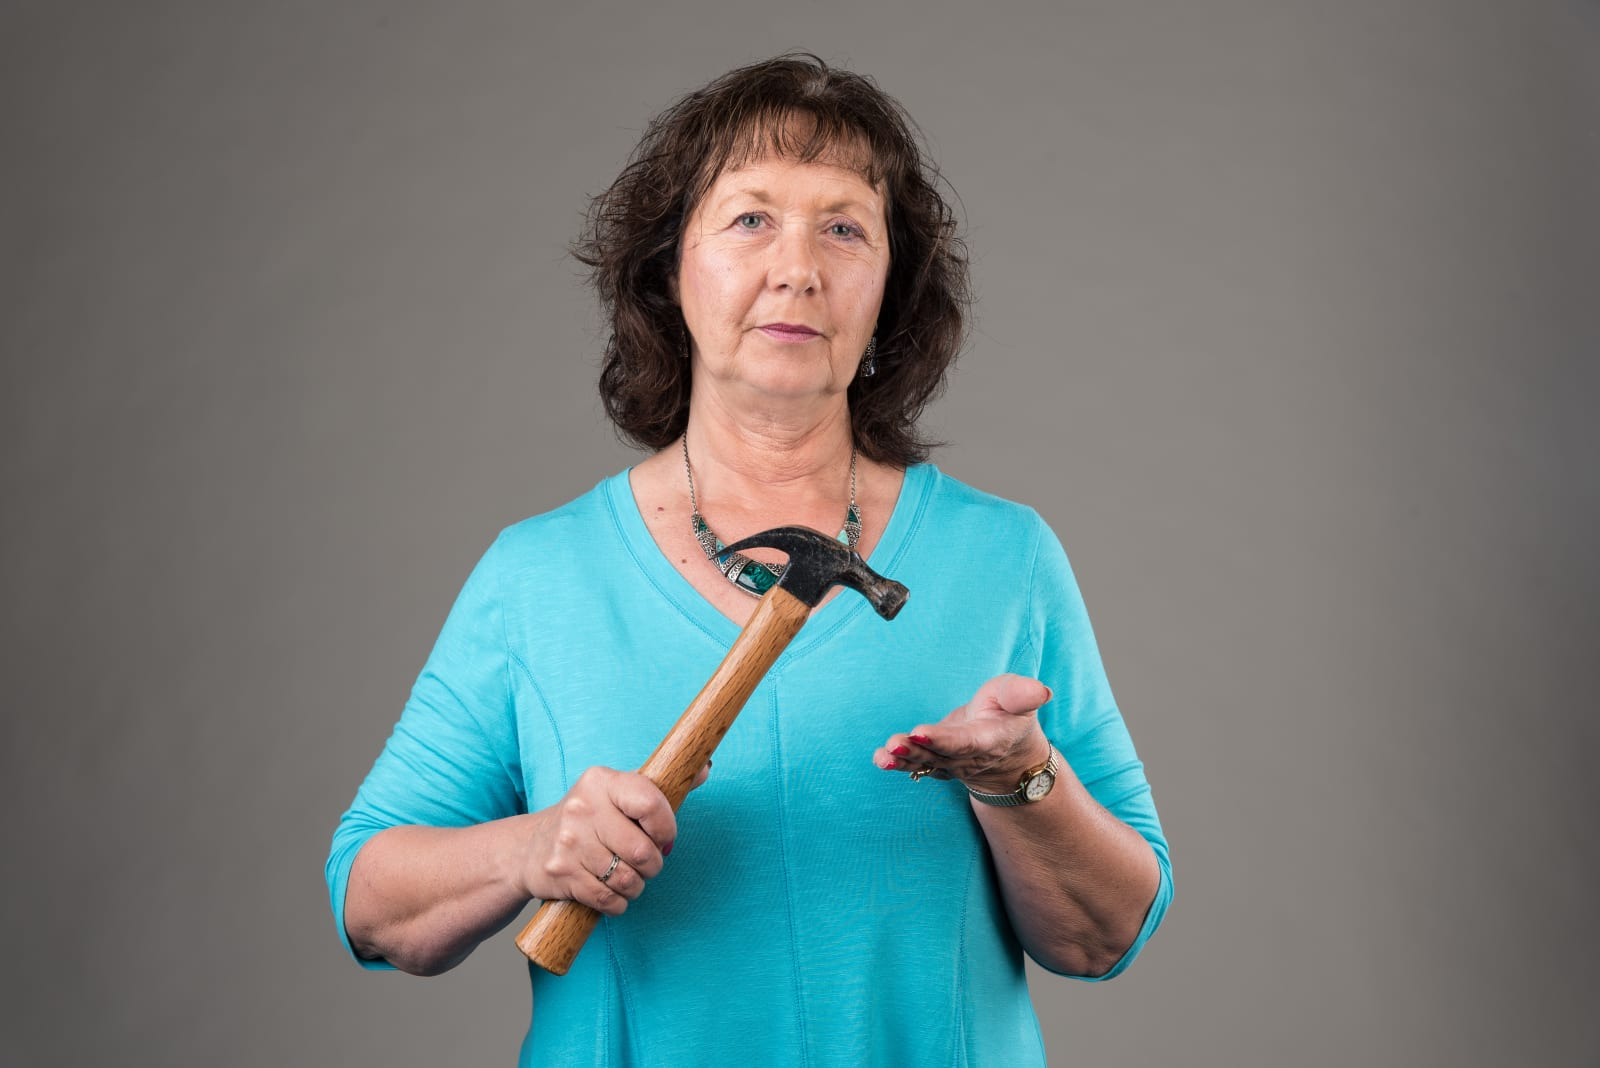 Cindy Struensee with Hammer